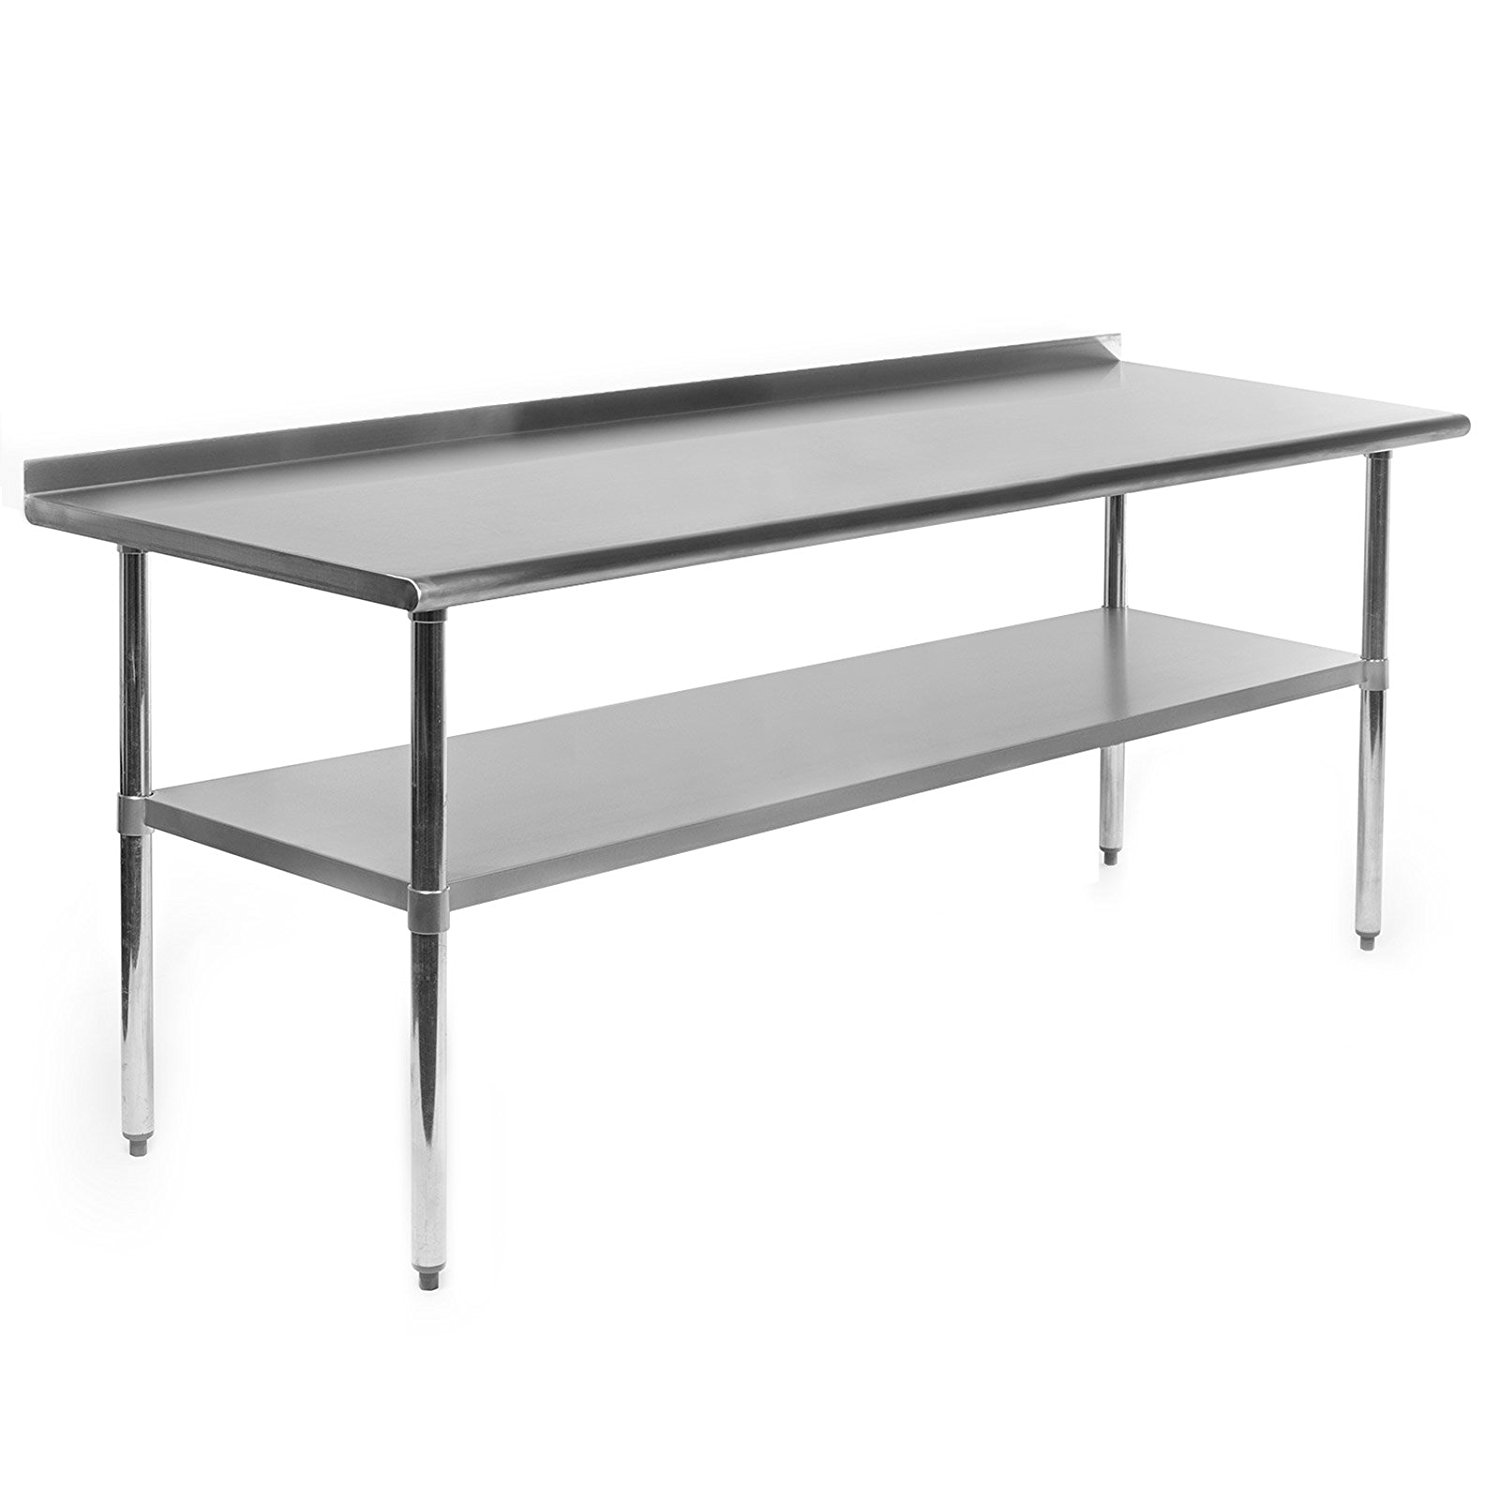 Restoration Stainless Steel Cleaning And Prep Table Ft X Ft With - Stainless steel table accessories